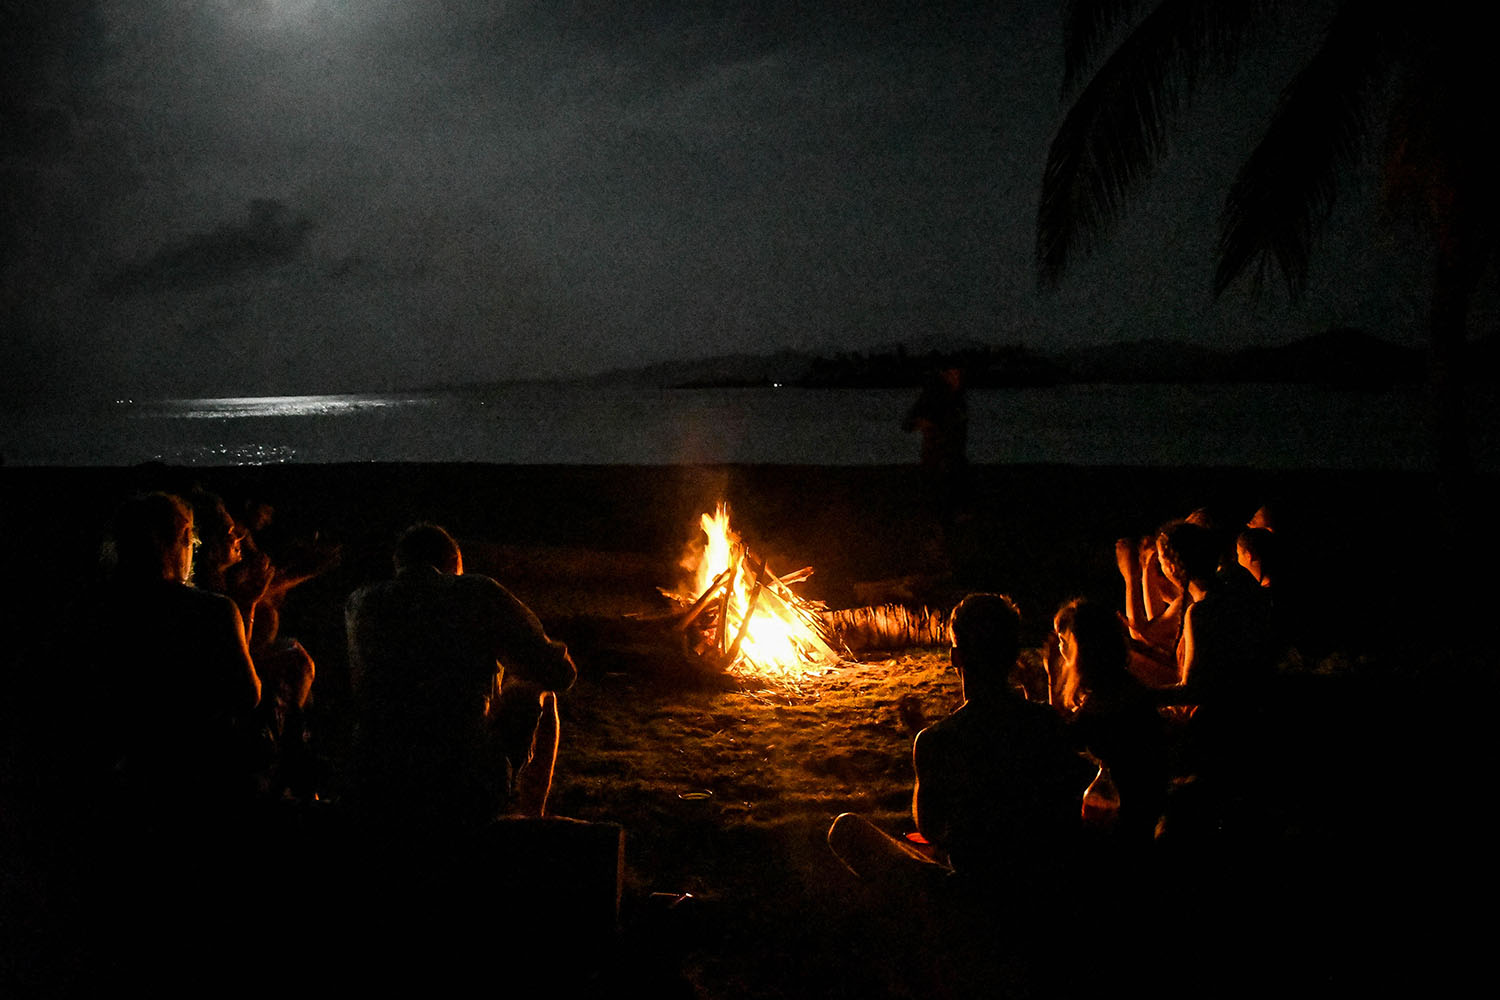 San Blas Islands Panama to Colombia Bonfire